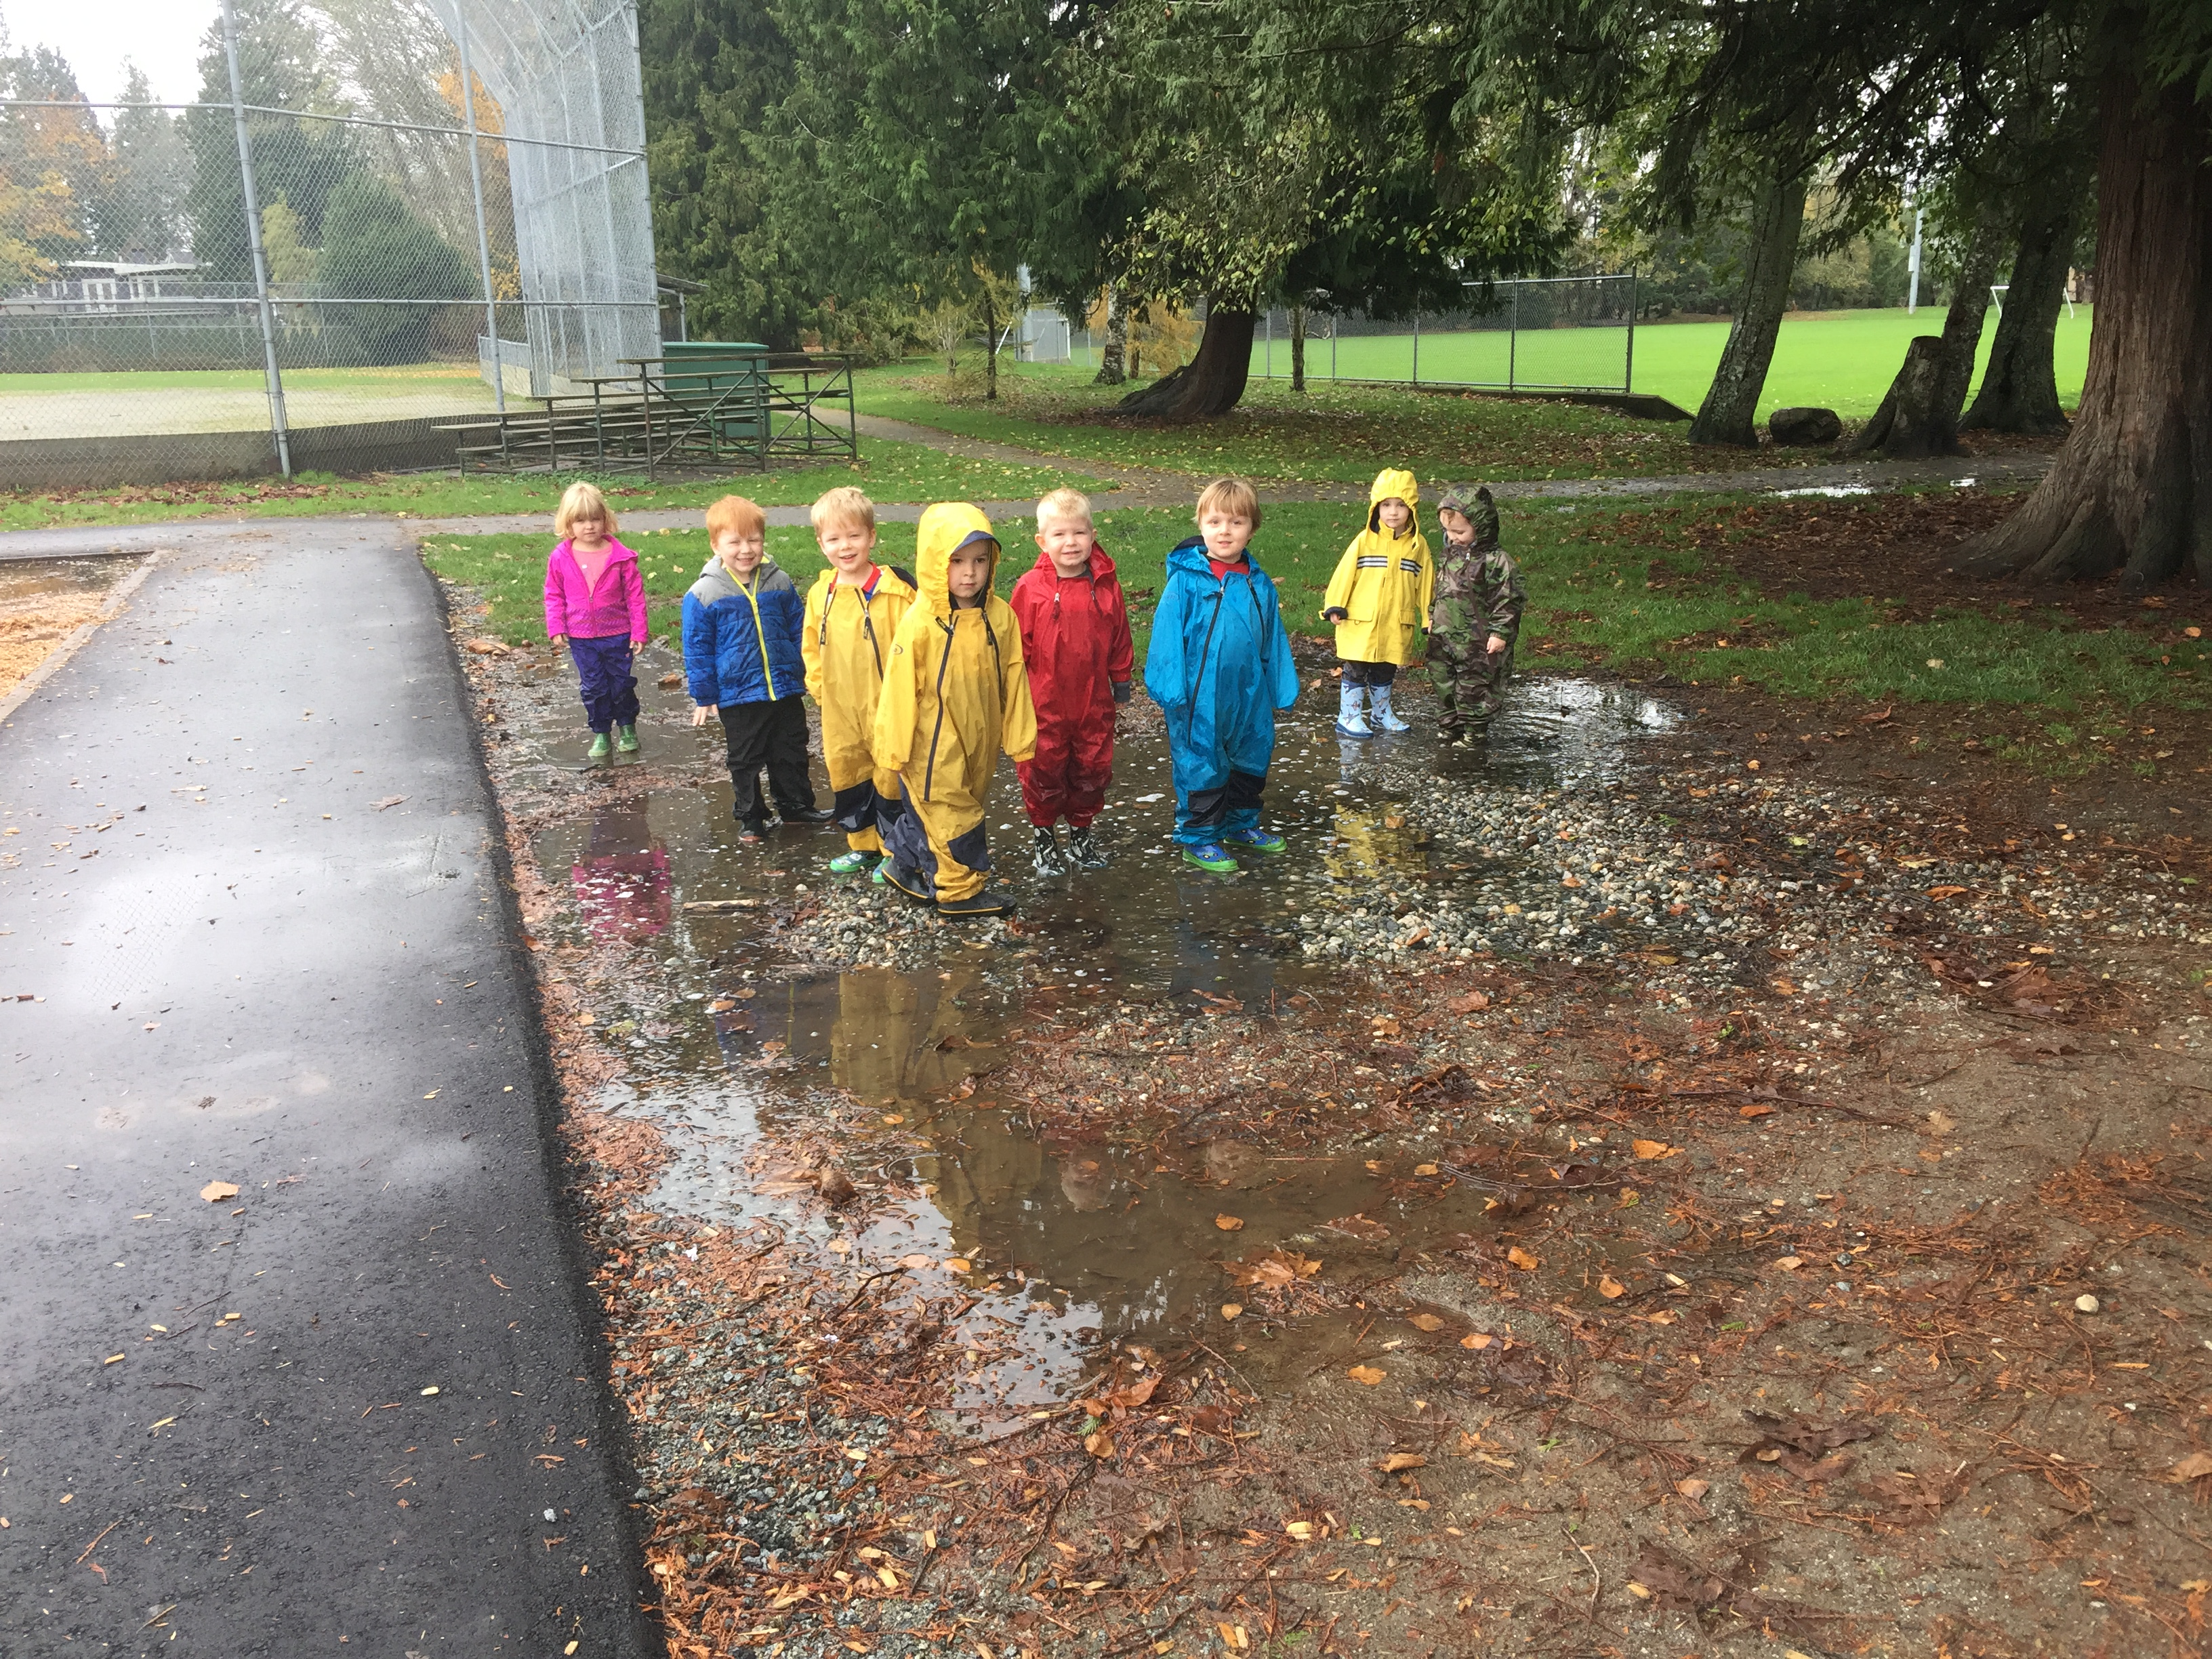 Jumping in puddles